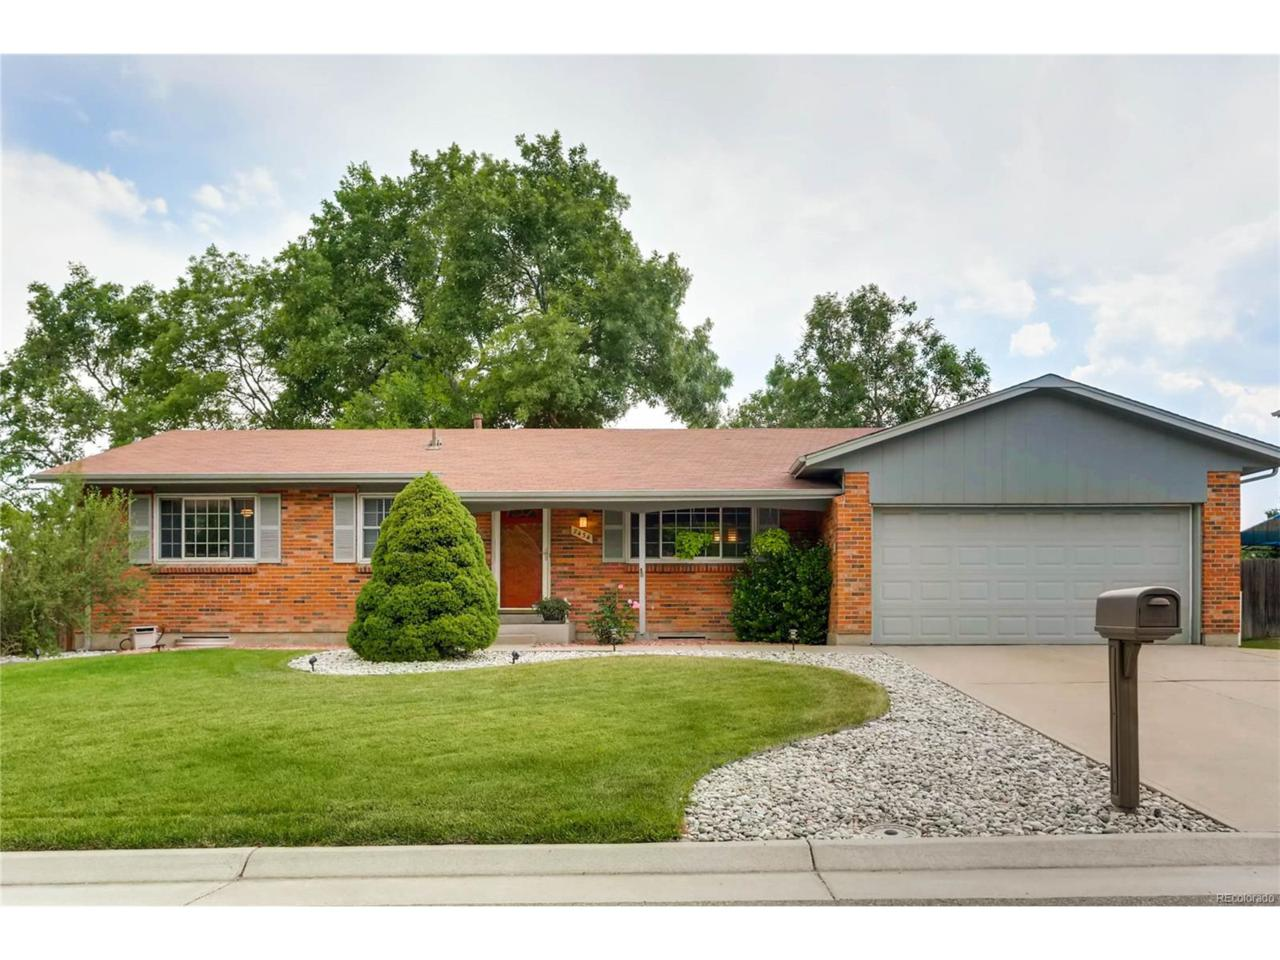 7454 W 81st Avenue, Arvada, CO 80003 (MLS #2587837) :: 8z Real Estate